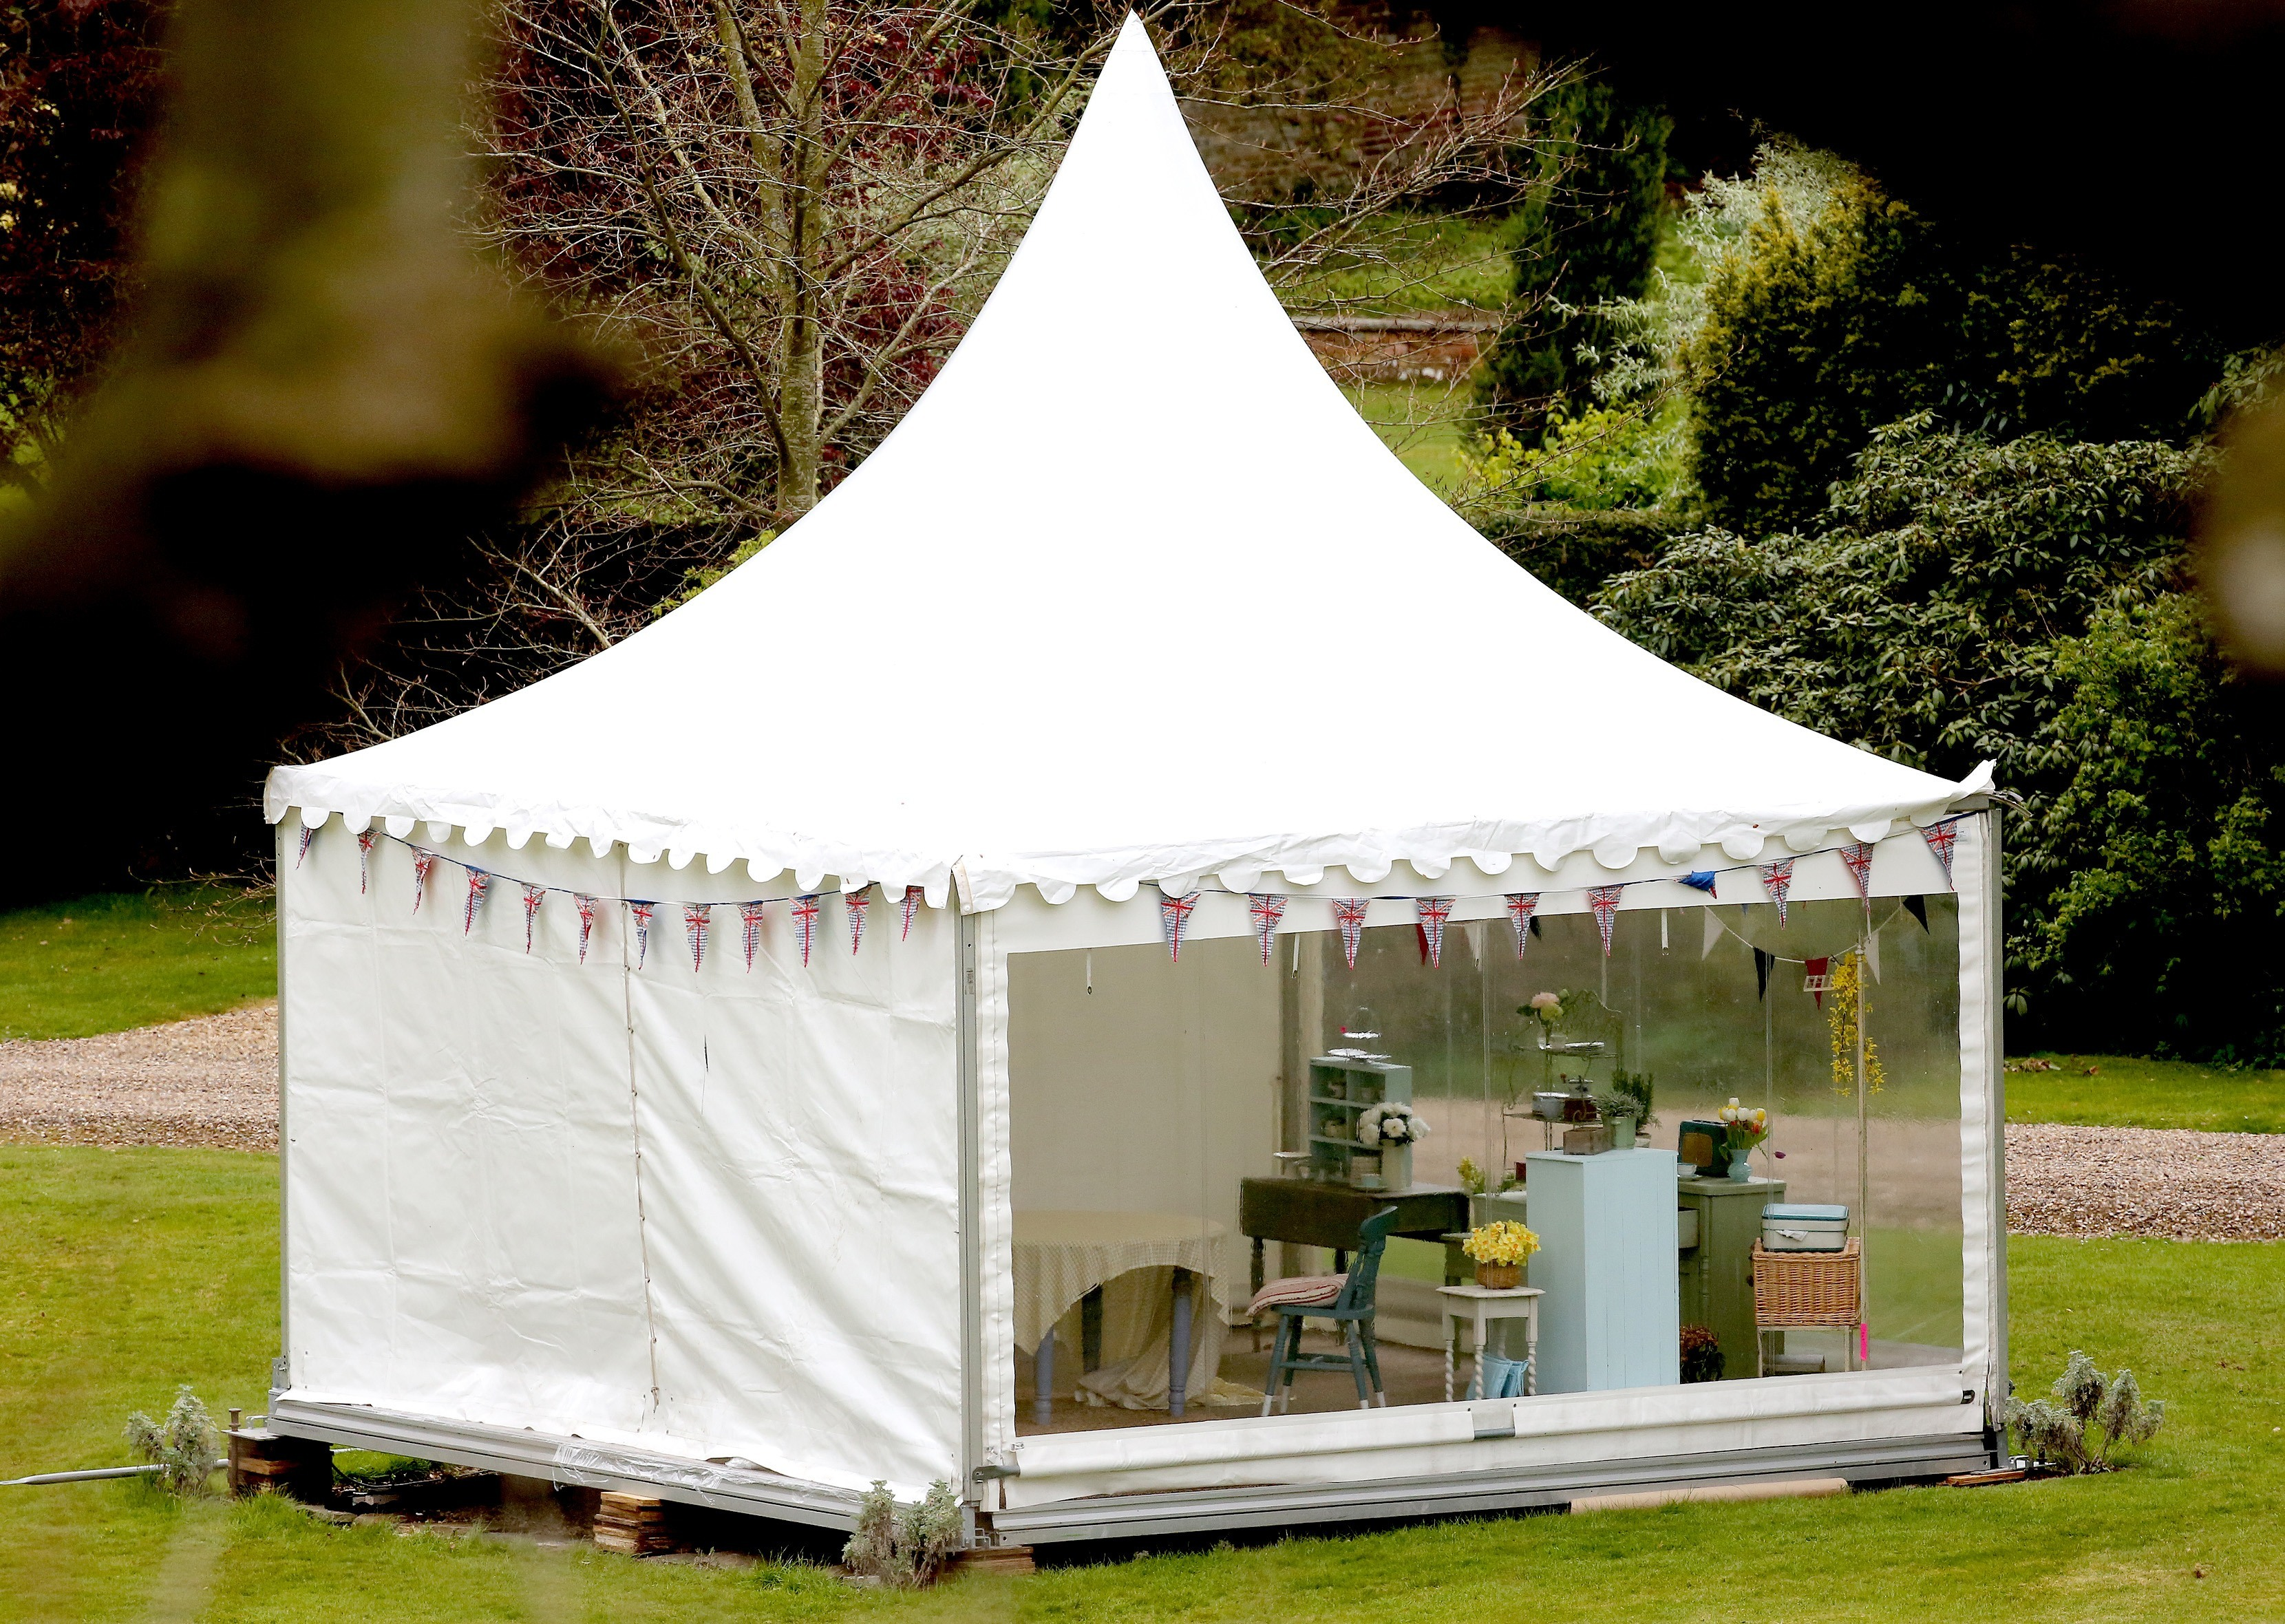 New British Bake Off Tent